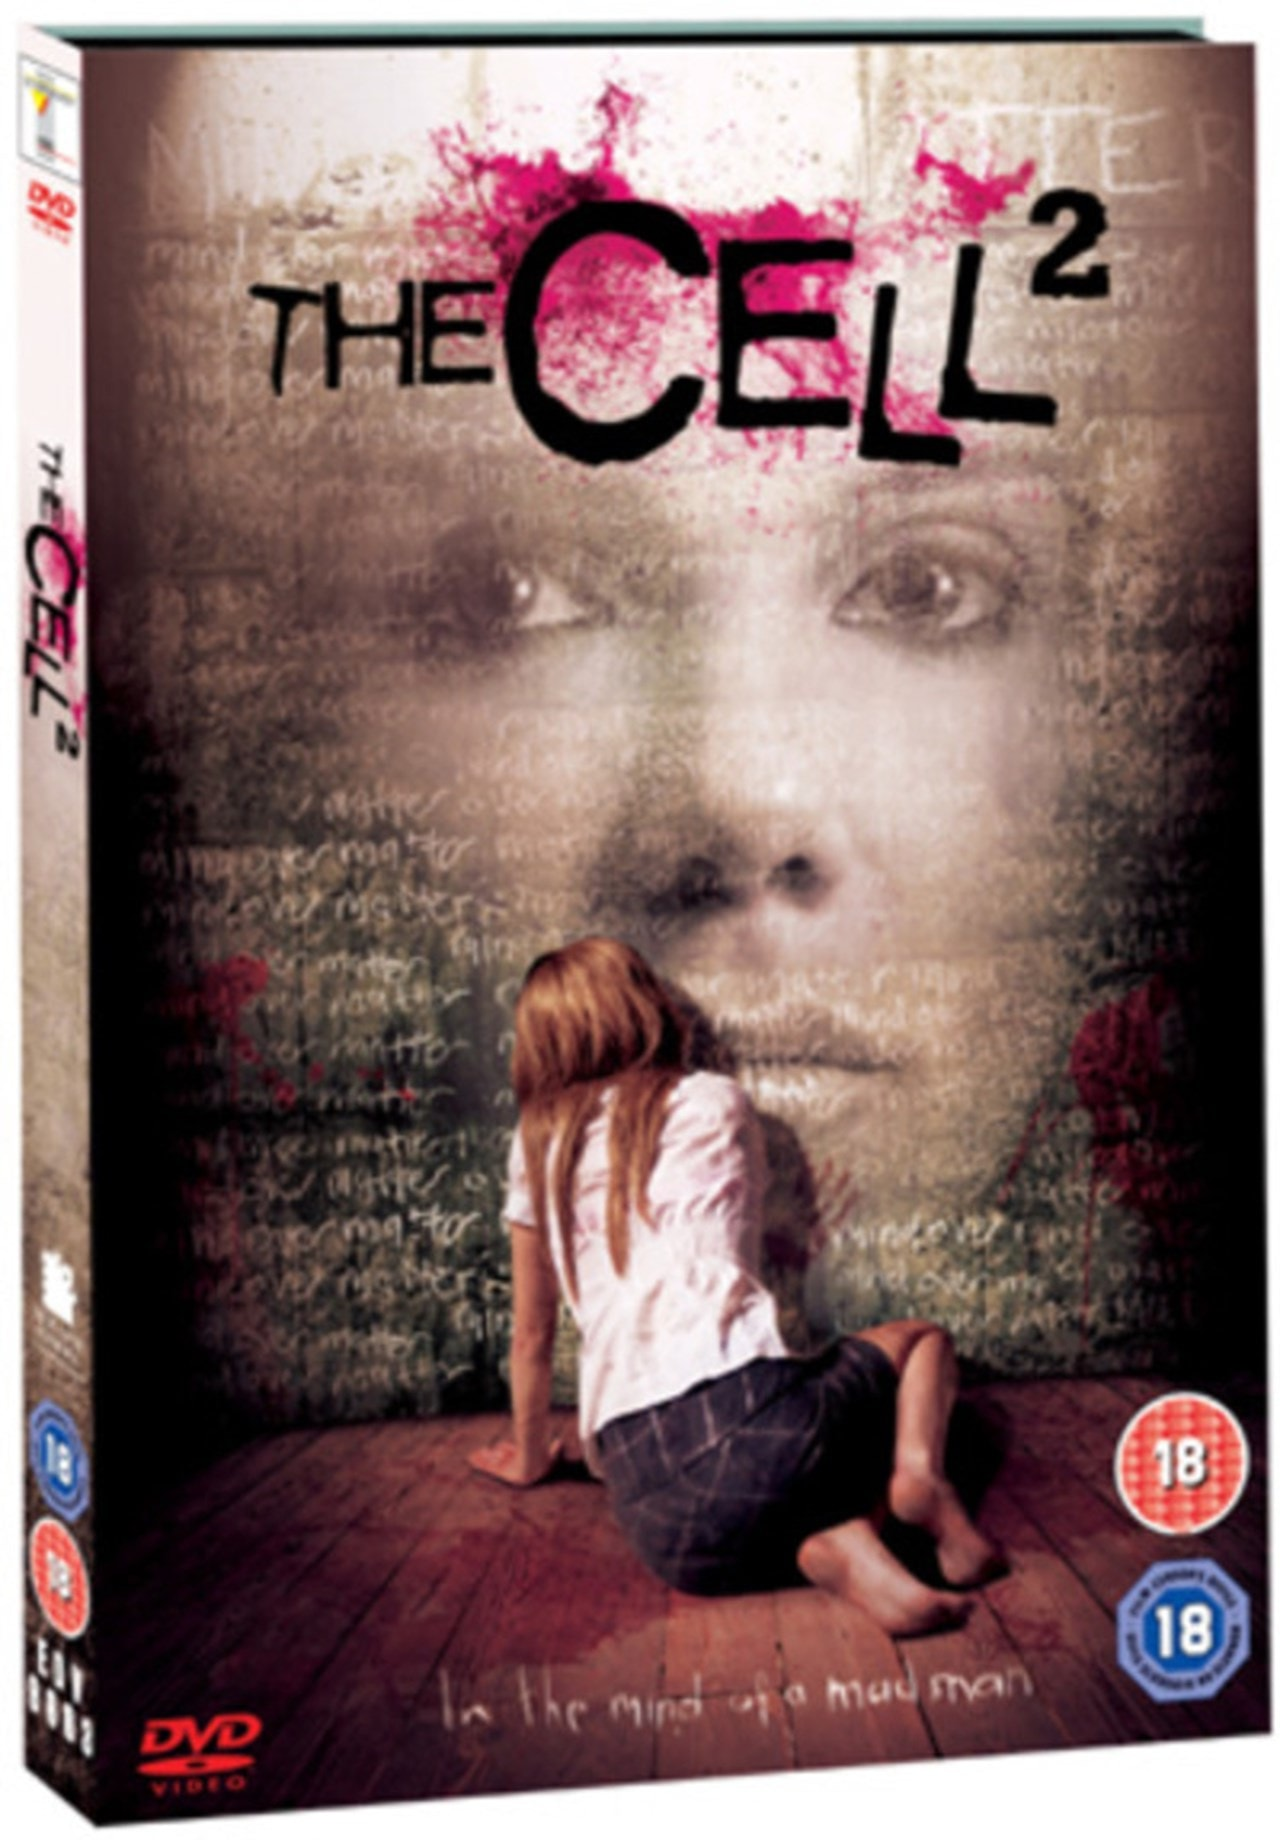 The Cell 2 - 1